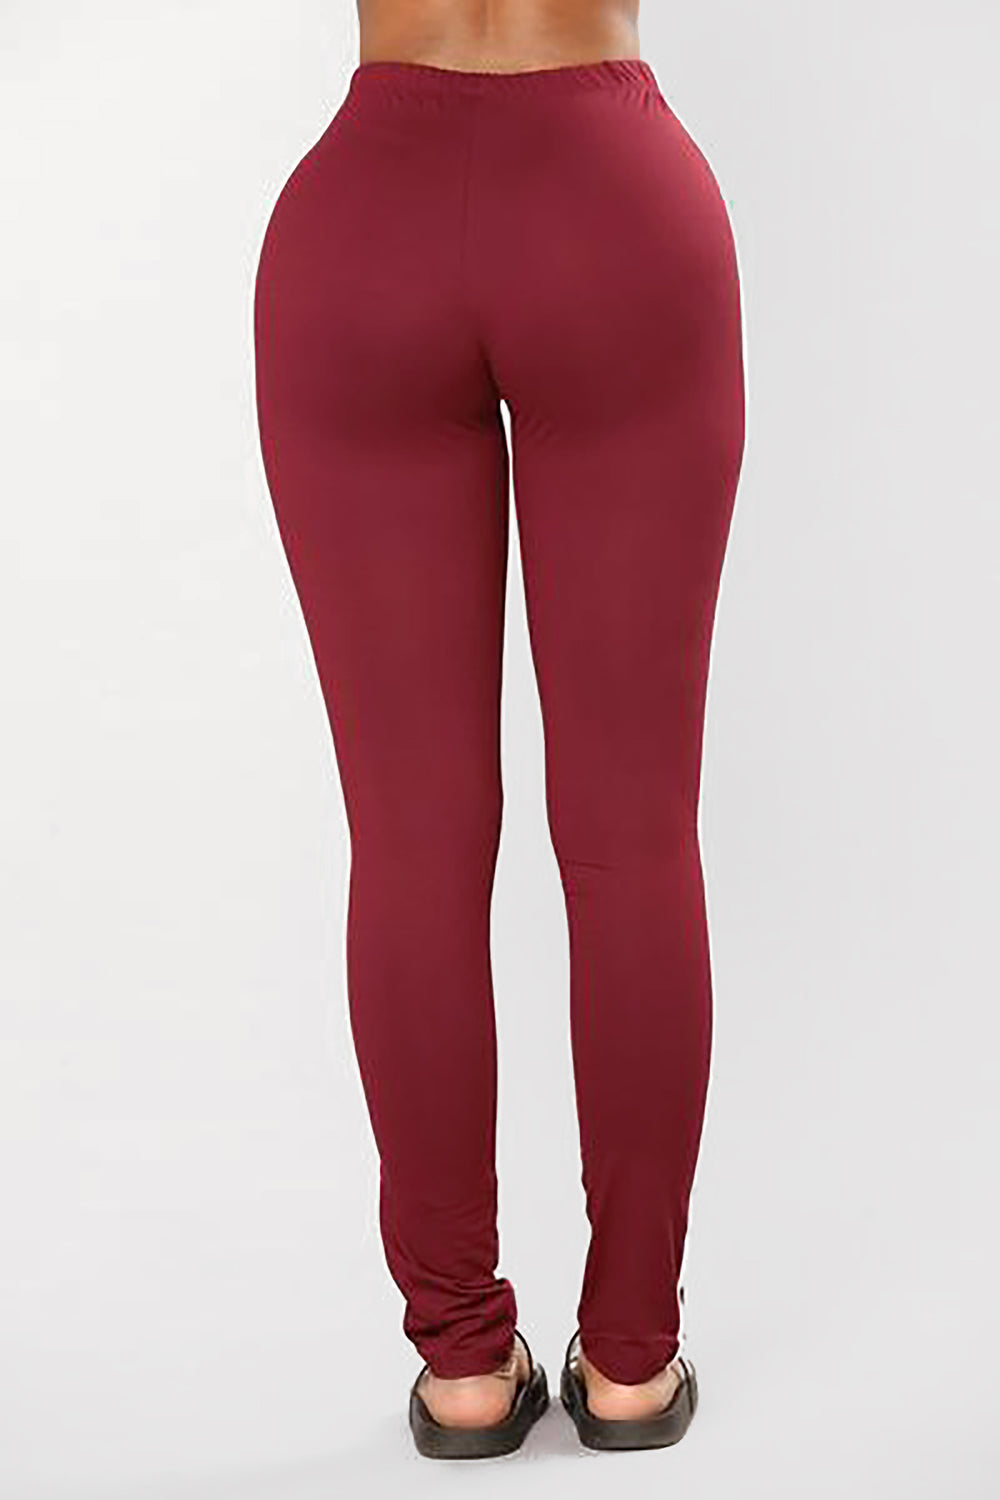 Knock Out Leggings - Wine